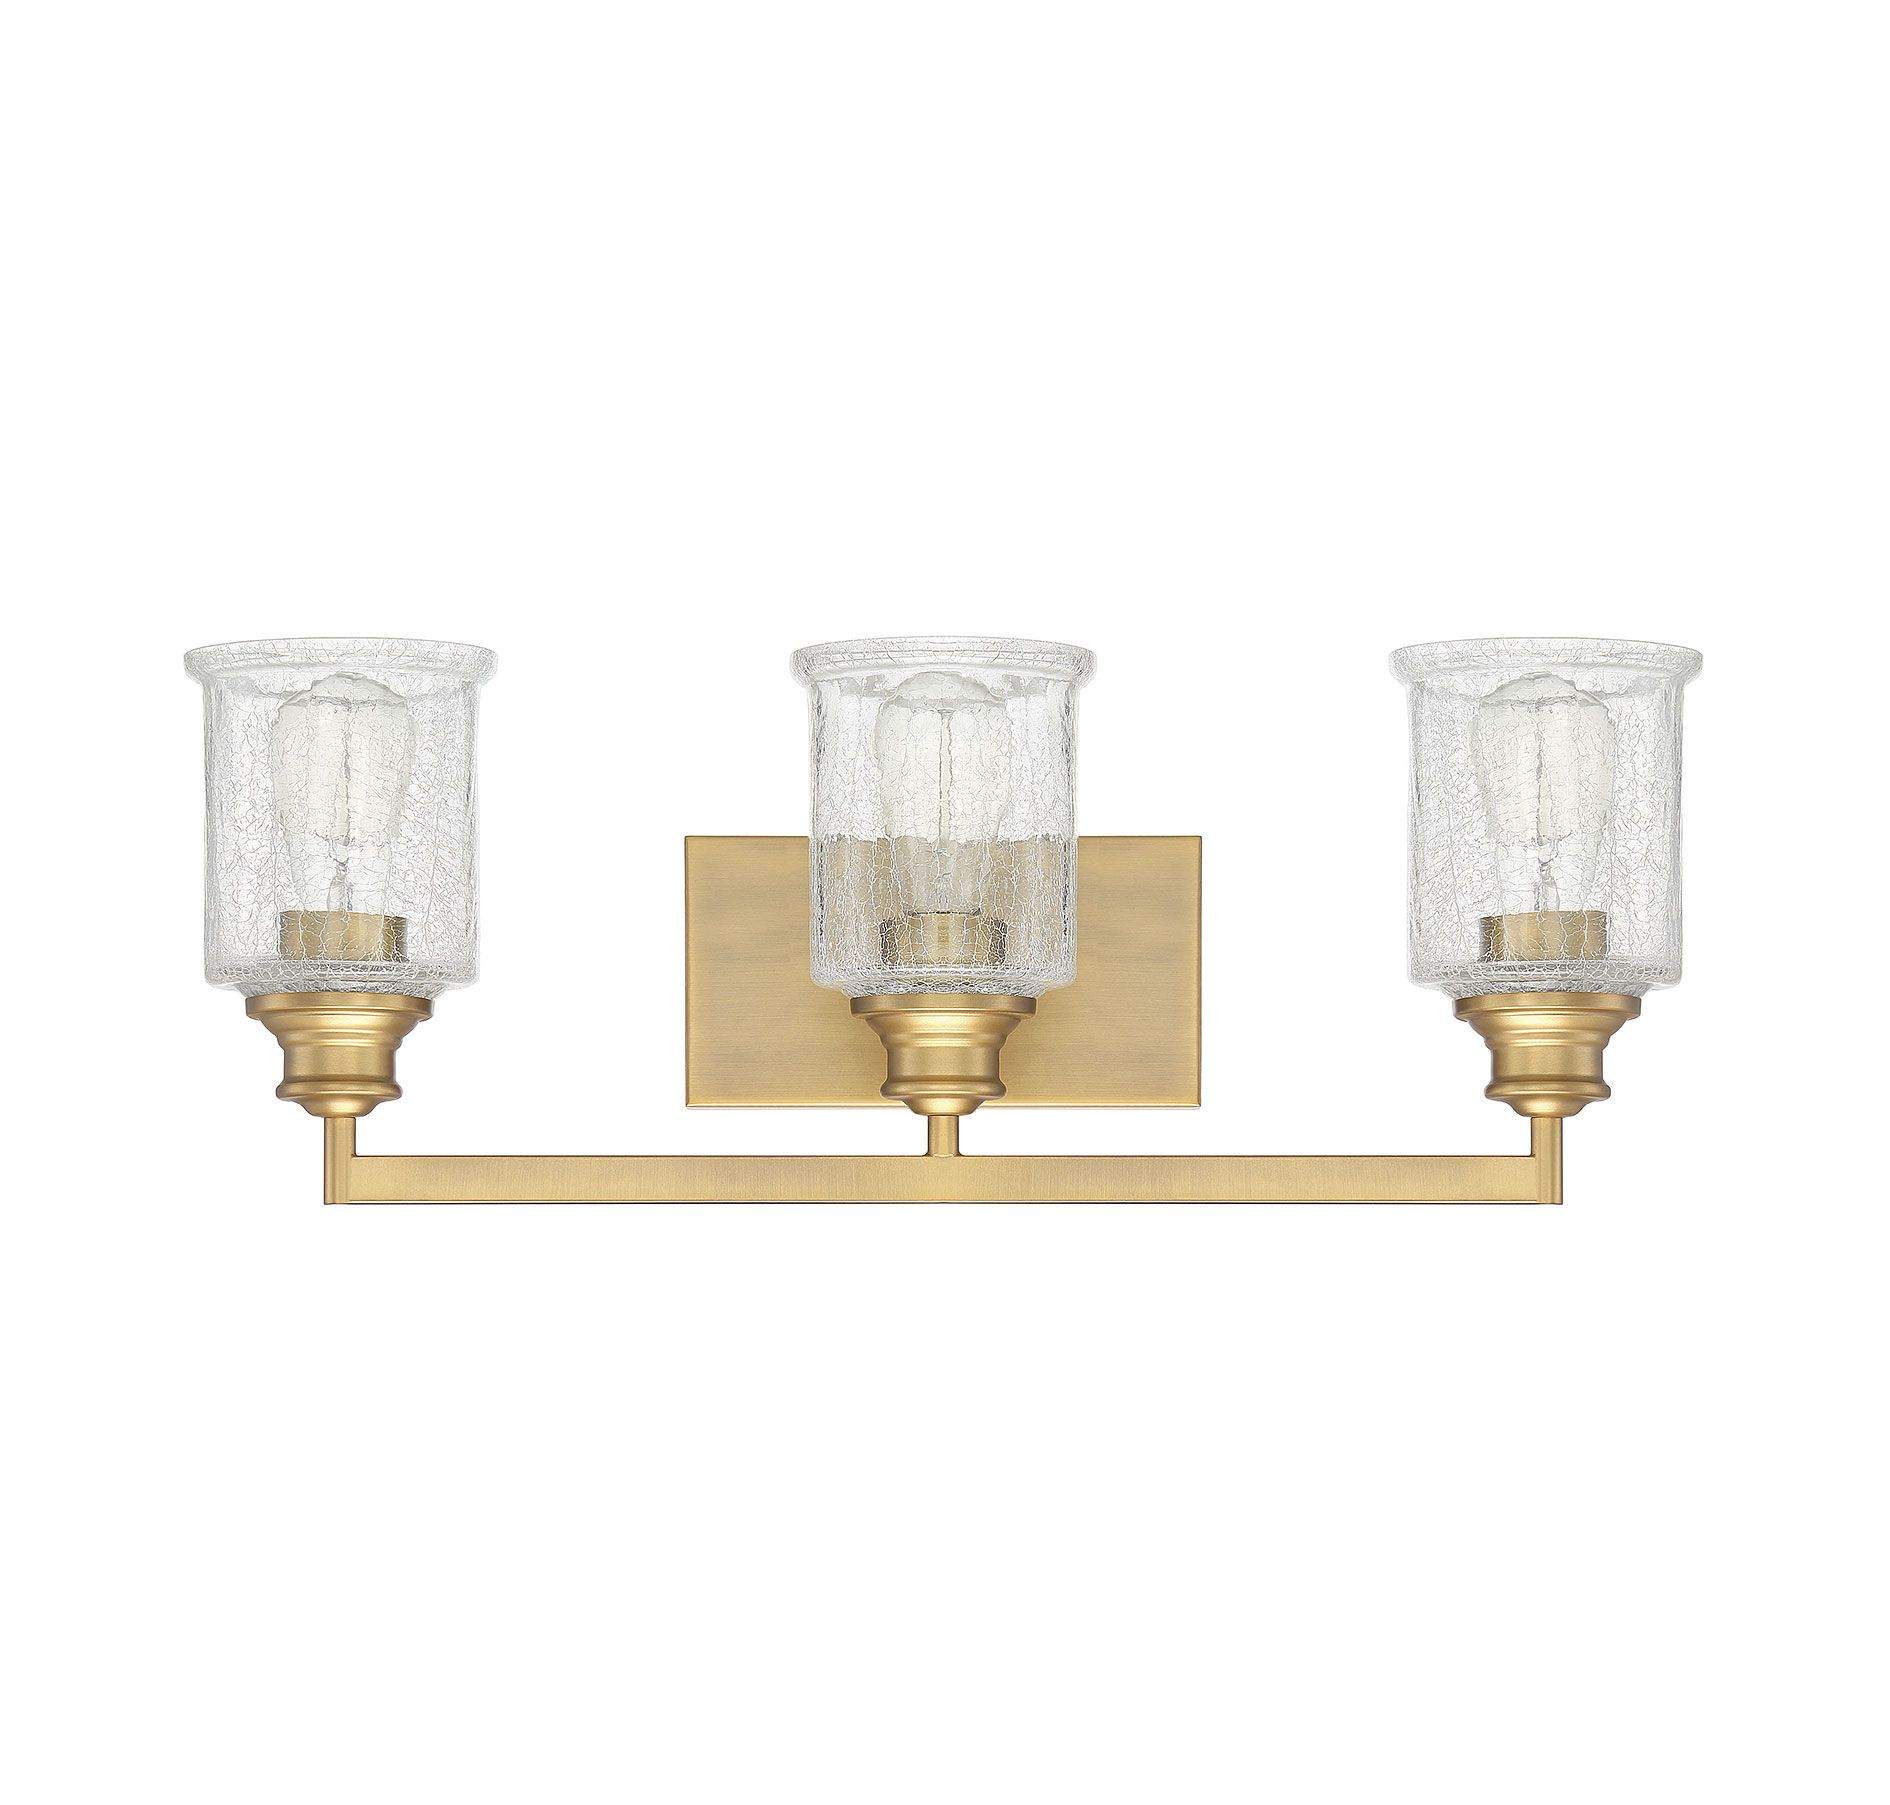 Photo of Savoy House Hampton 3-light bathroom vanity light in warm brass